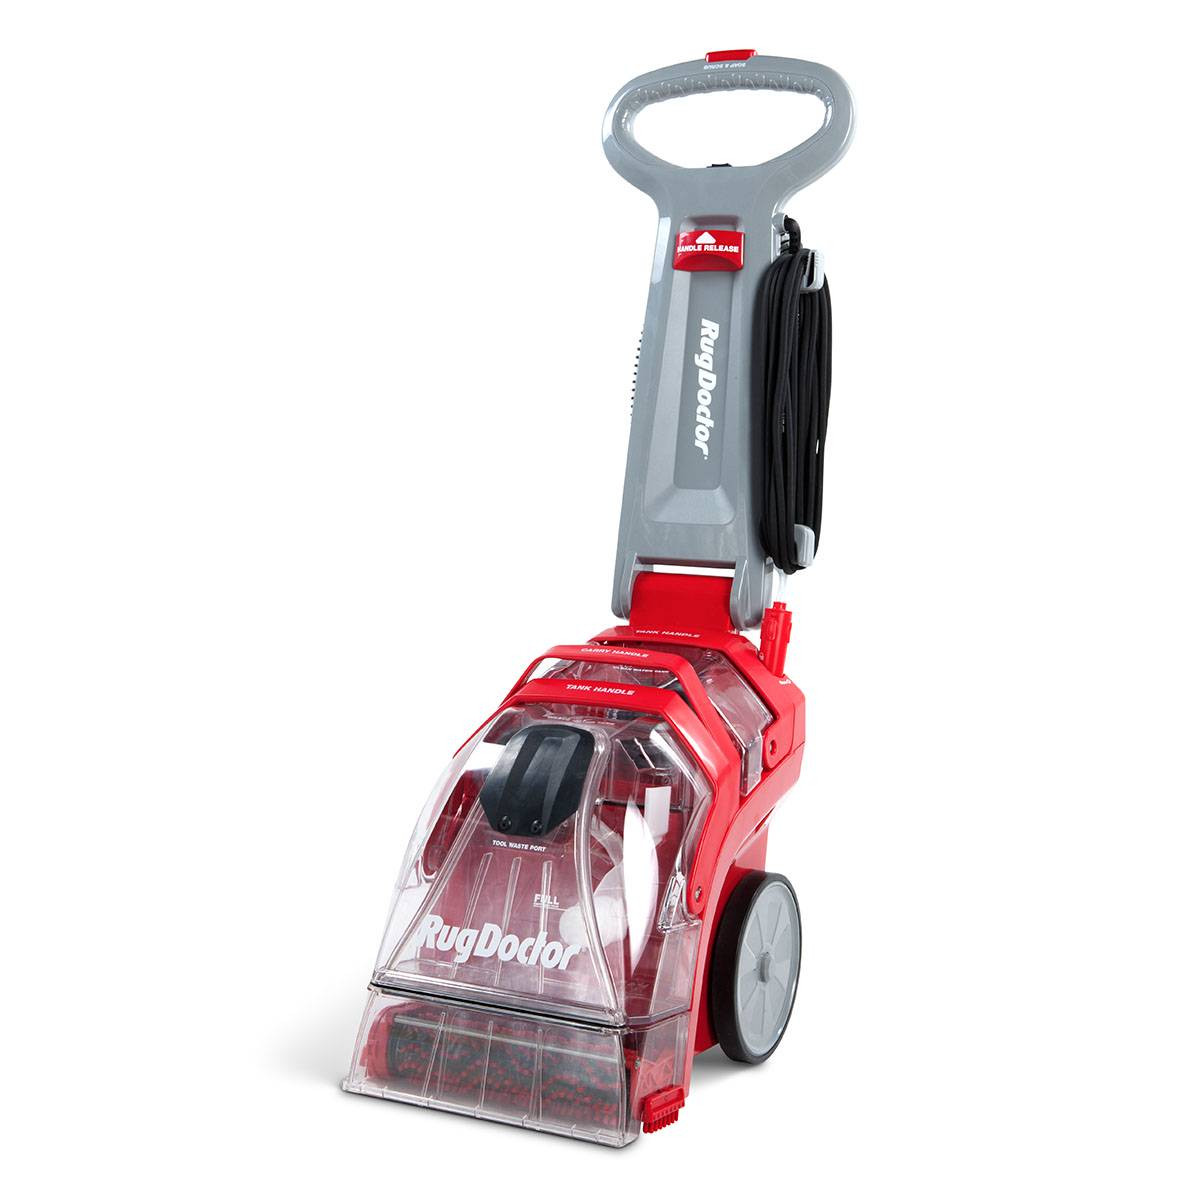 steam cleaners for hardwood floors ratings of cleaning machine marvelous professional hardwood floor cleaninges in full size of cleaning machine xrug doctor deep carpet cleaner angle pagespeed ic hzhi0 hg8b